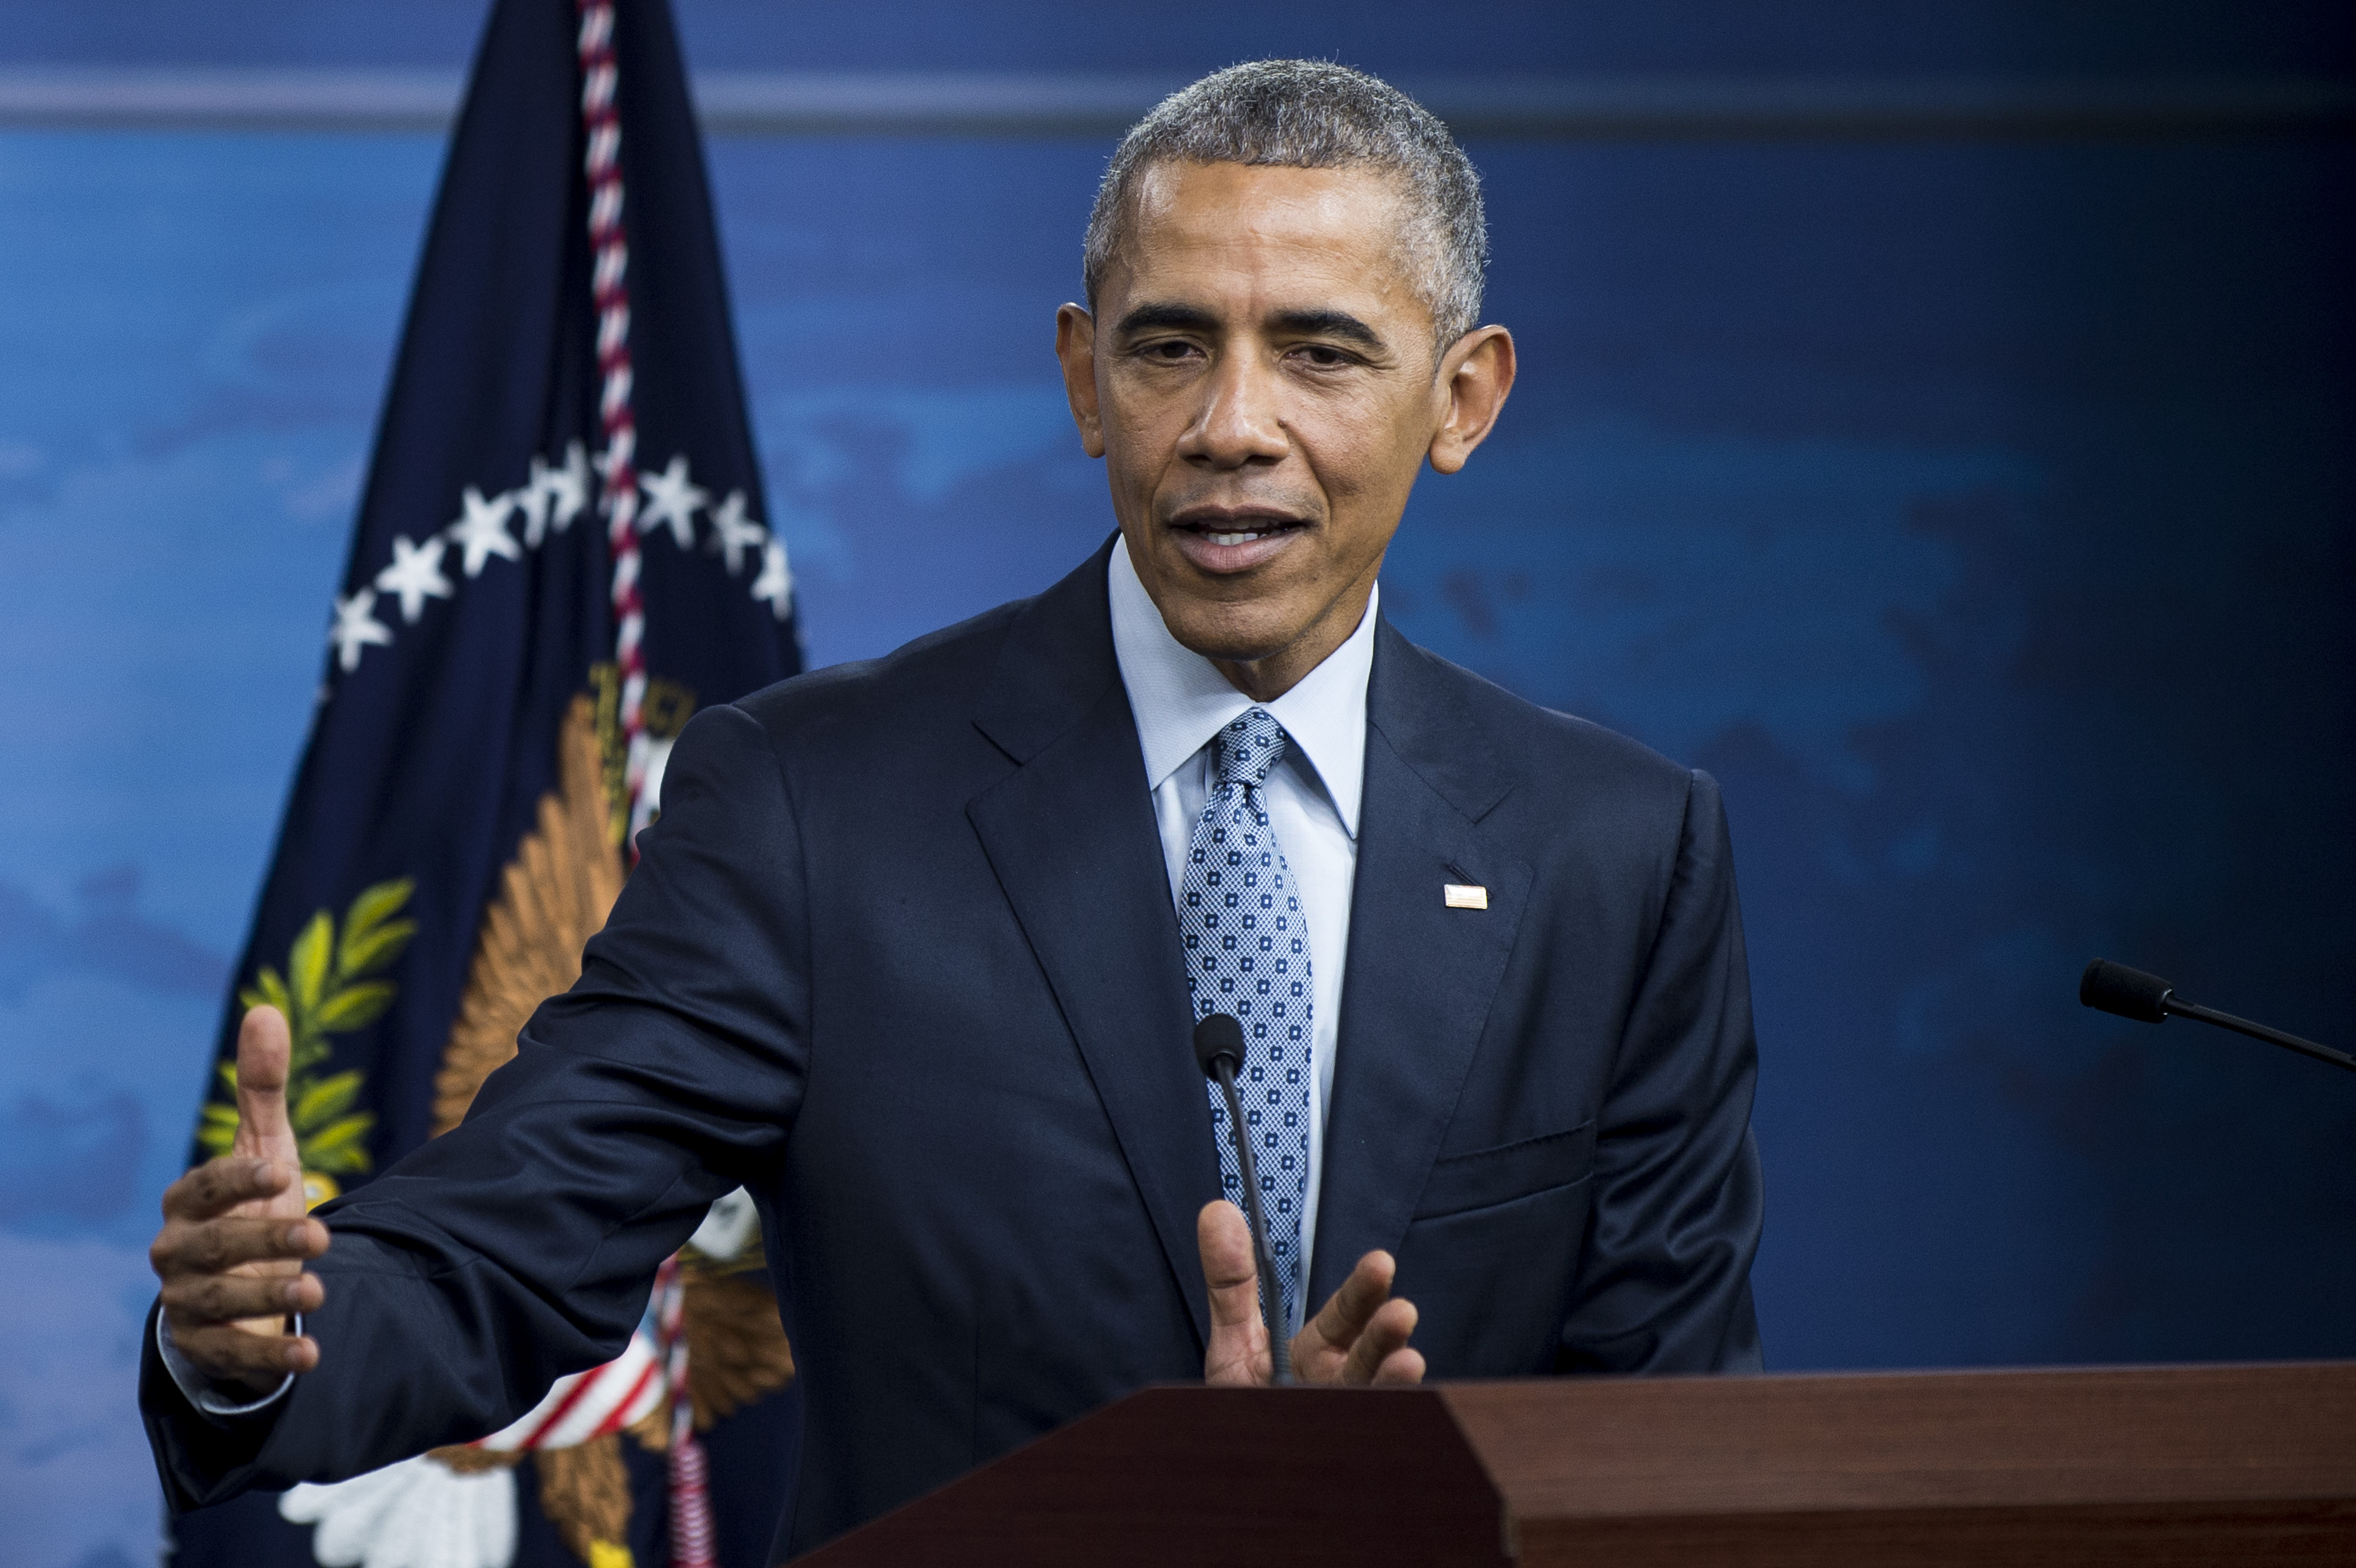 President Obama Holds News Conference At the Pentagon